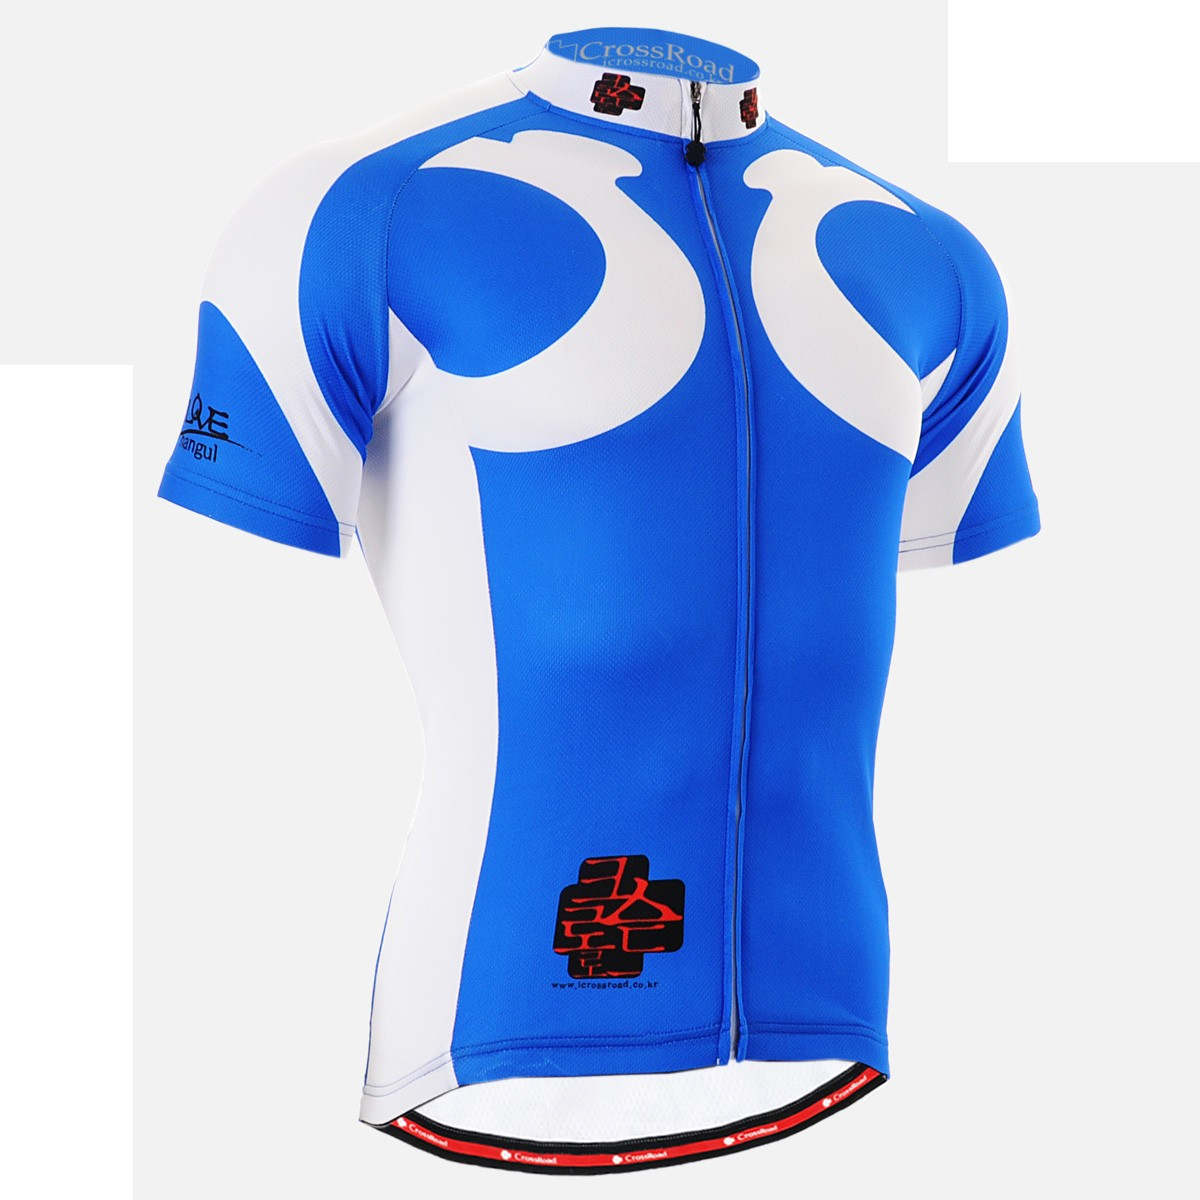 ... FIXGEAR Short Sleeve Cycling Jersey. Previous. Next e66d86d7d